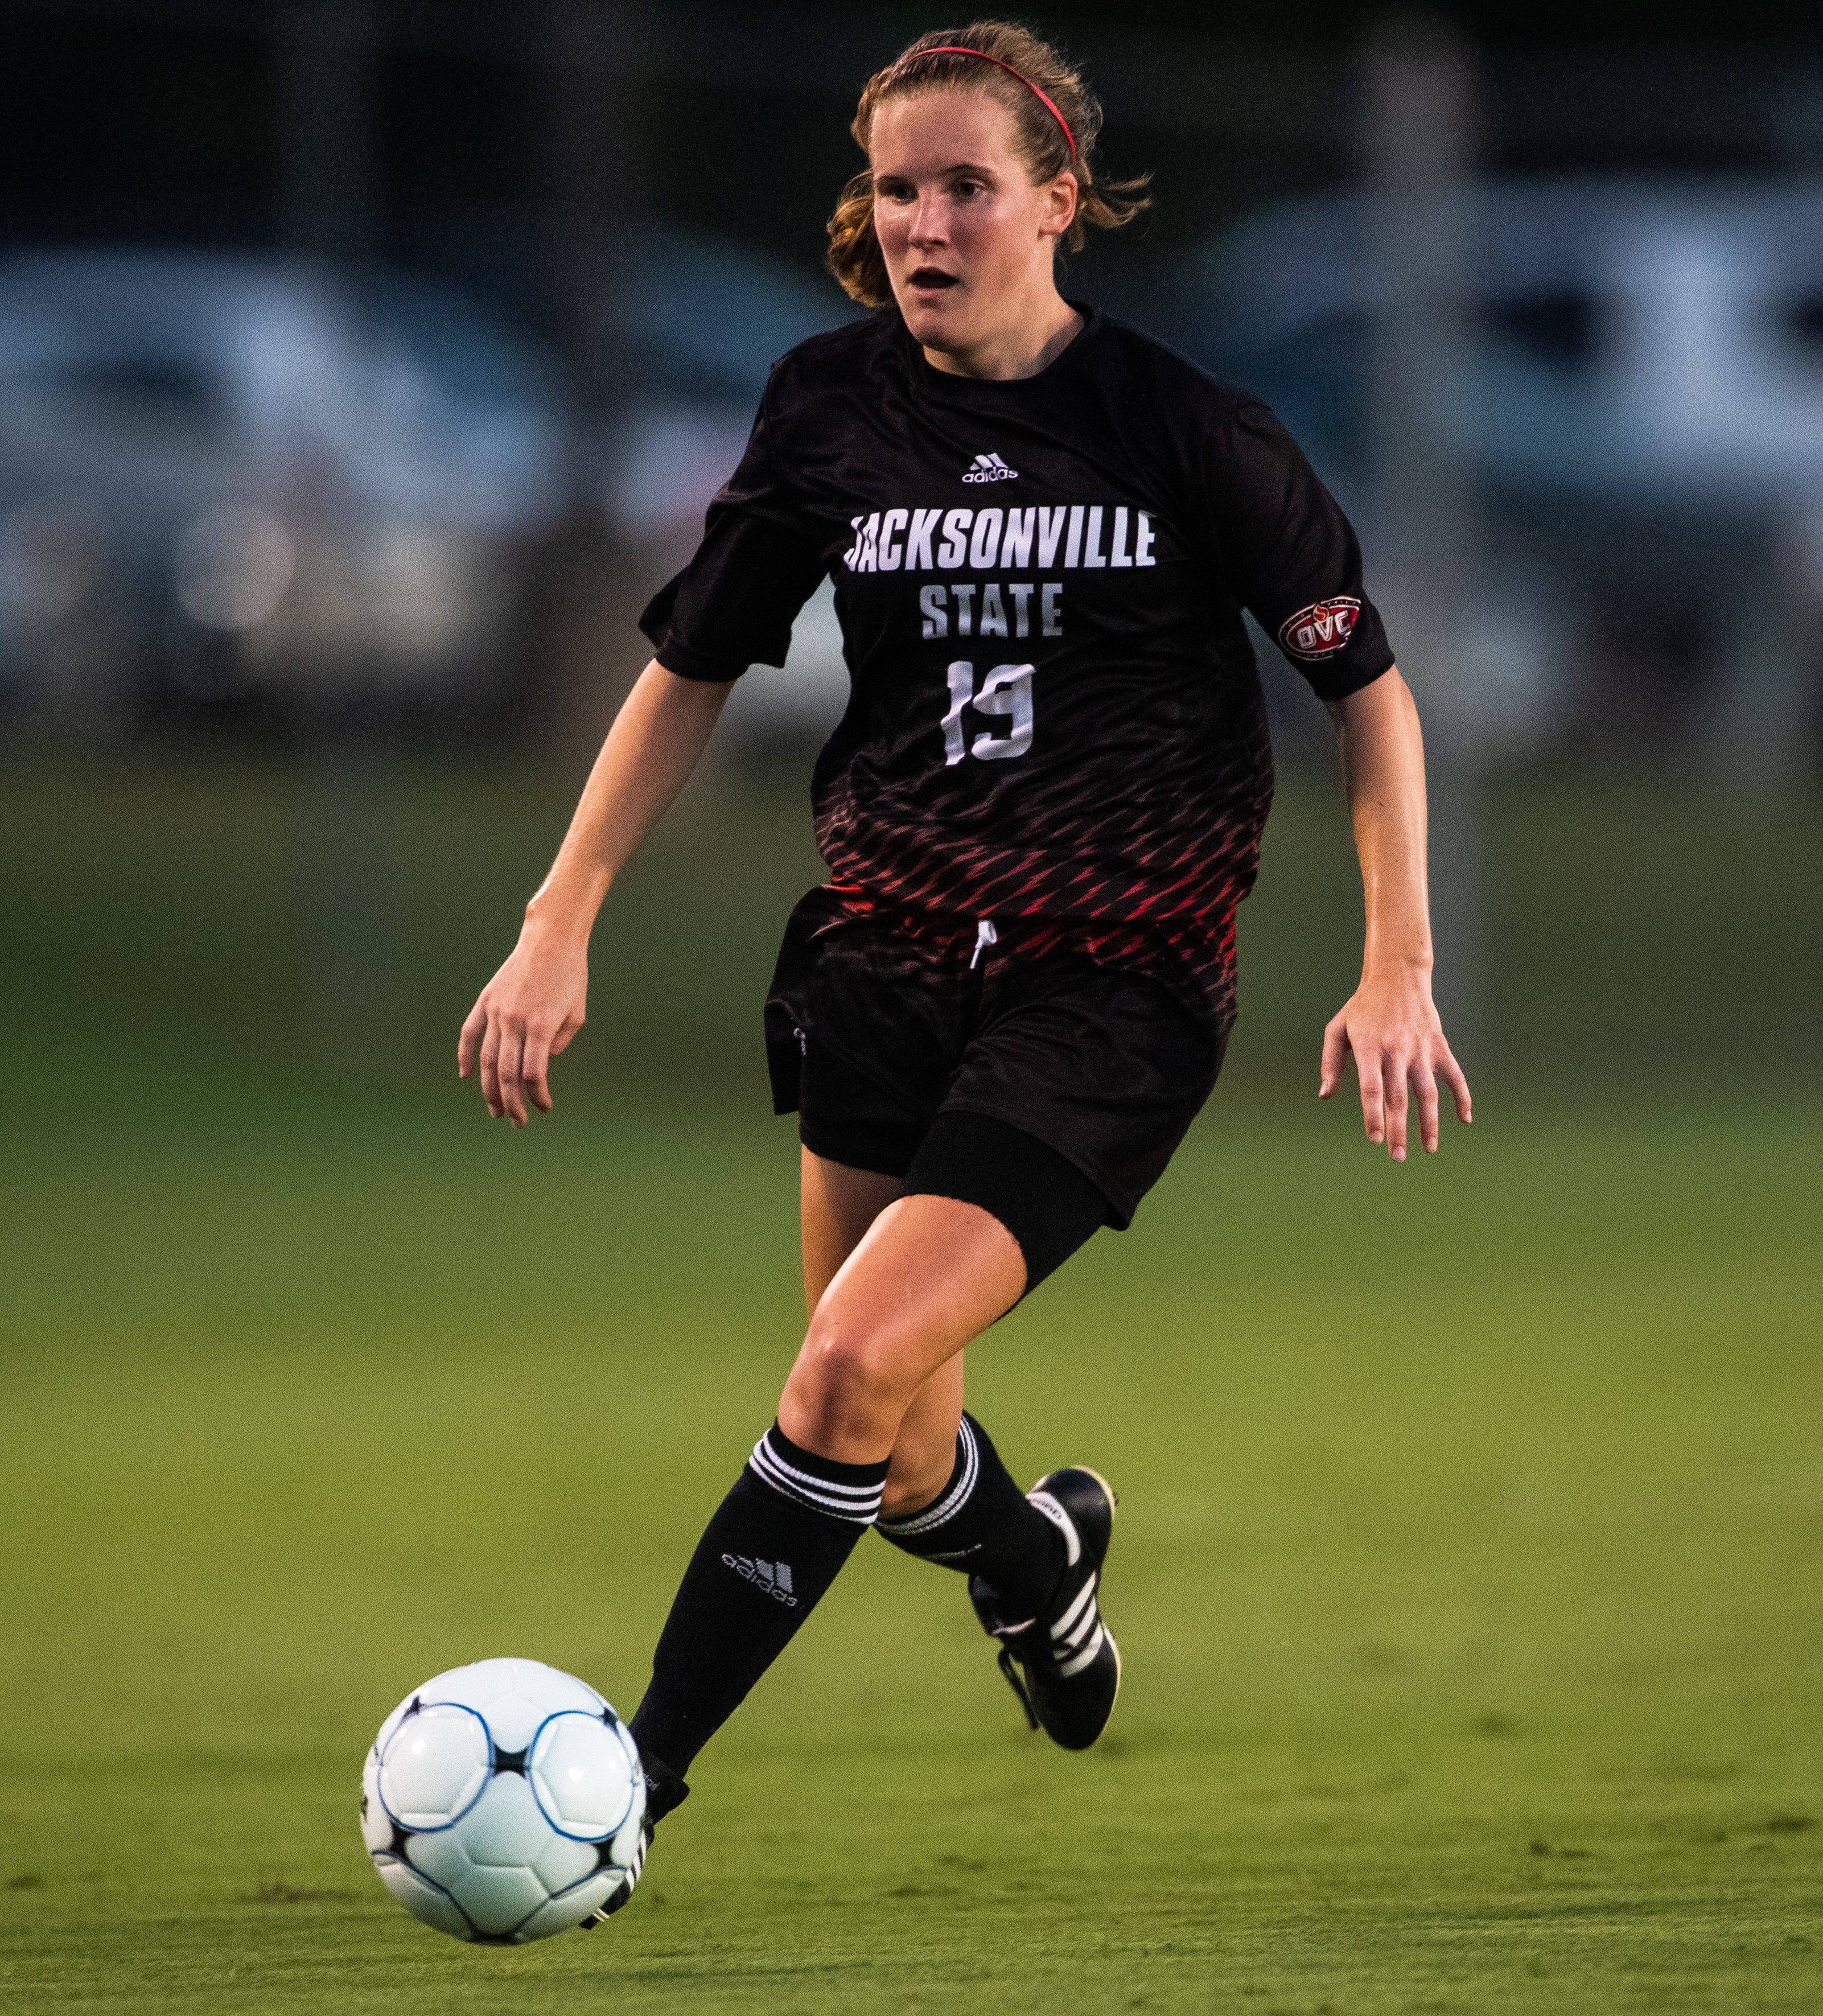 Maddy Meadows dribbles the soccer ball down the field during a game.